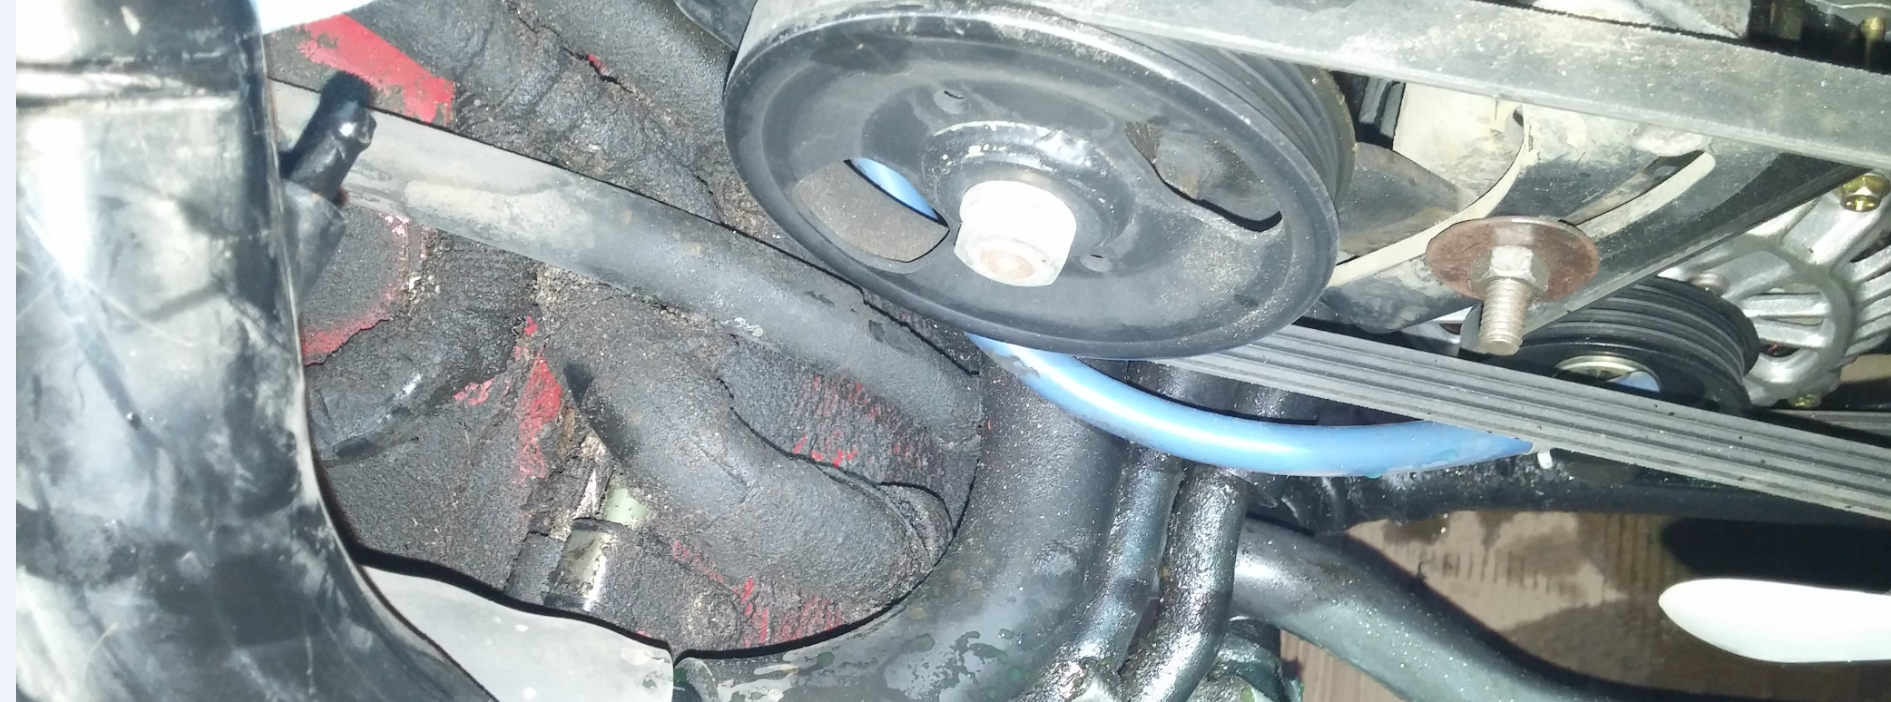 Heres What It Cost To Buy And Rebuild A Nissan 300zx Twin Turbo So Is This Basically Power Steering Pump As With Any Ageing Hydraulic System Leaks Begin Develop One Of The Hardest Things Track Down Leak In Cramped Engine Bay Like